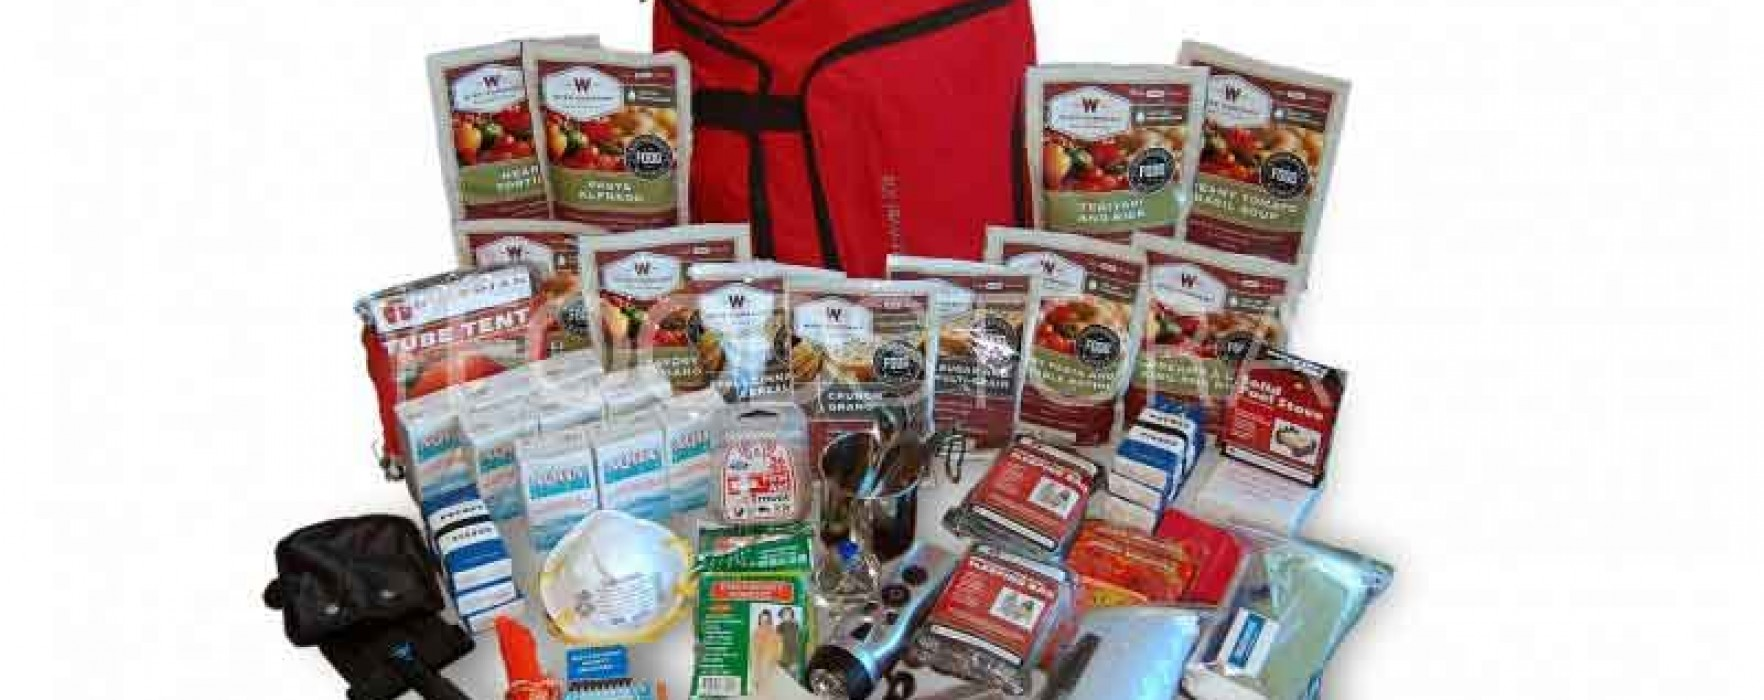 The Basics of Your Ideal Bug Out Bag